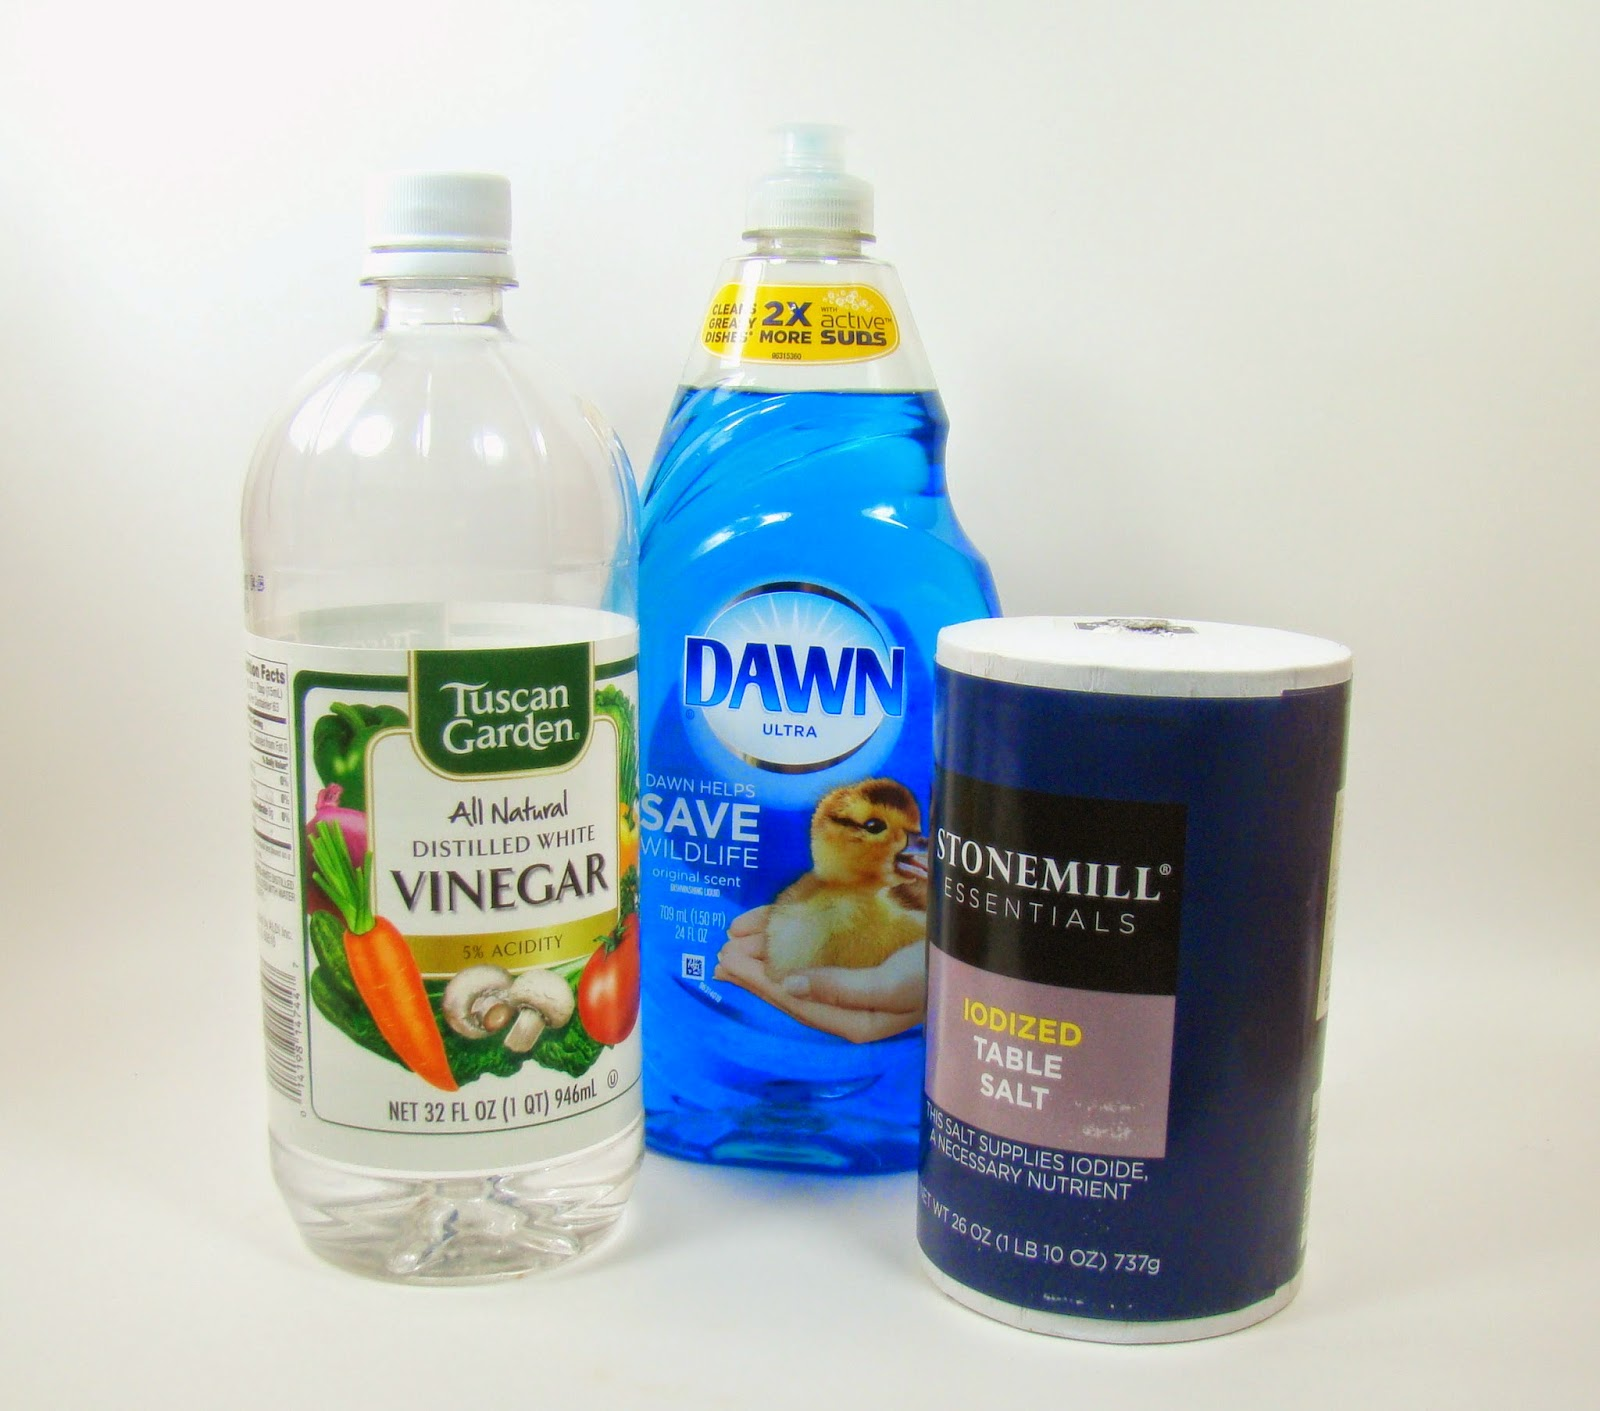 how to kill fleas with dawn and vinegar